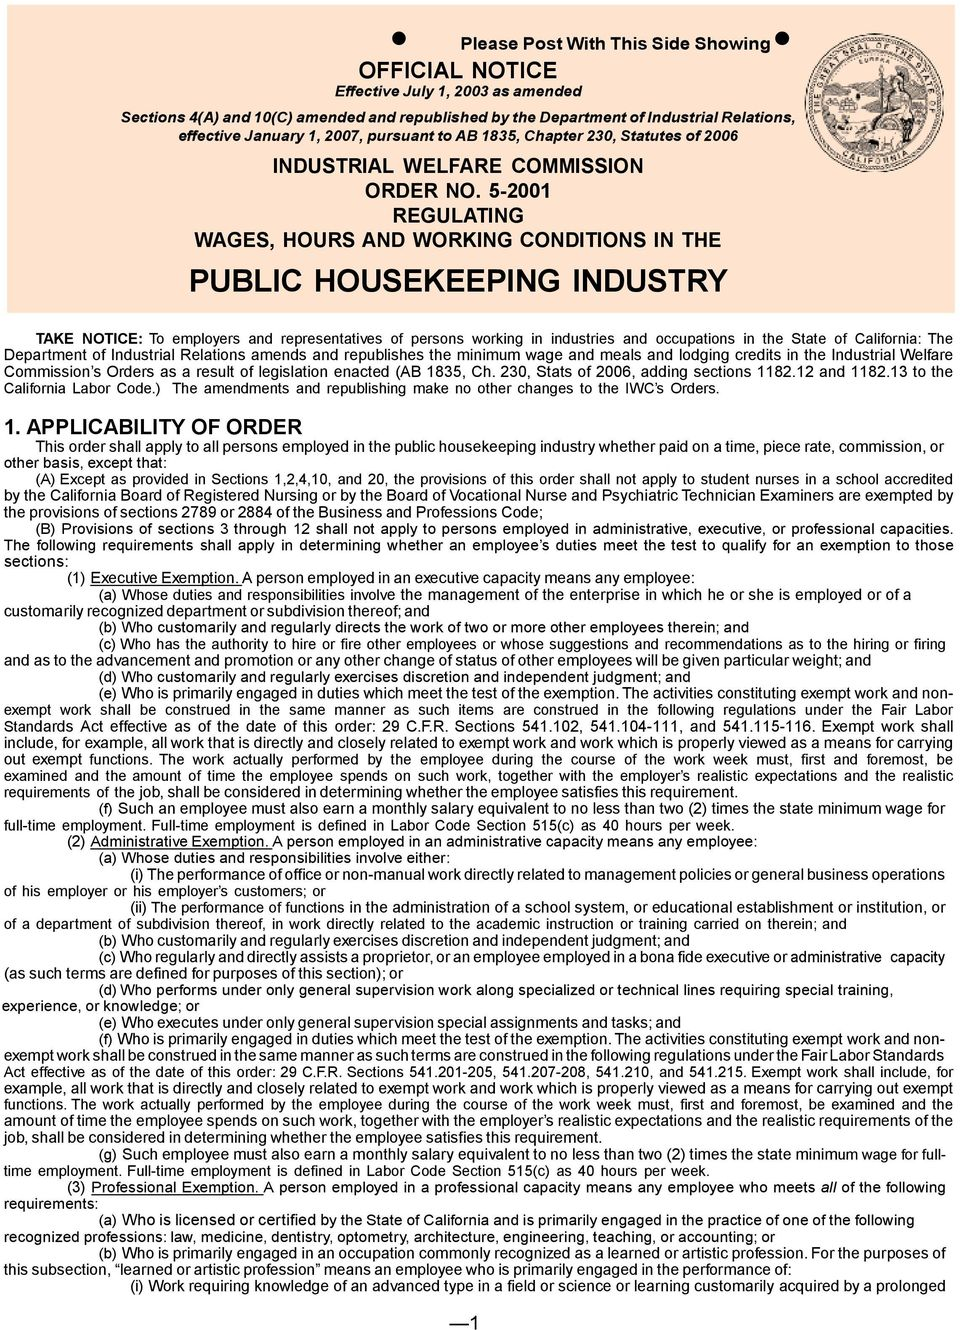 5-2001 REGULATING WAGES, HOURS AND WORKING CONDITIONS IN THE PUBLIC HOUSEKEEPING INDUSTRY TAKE NOTICE: To employers and representatives of persons working in industries and occupations in the State